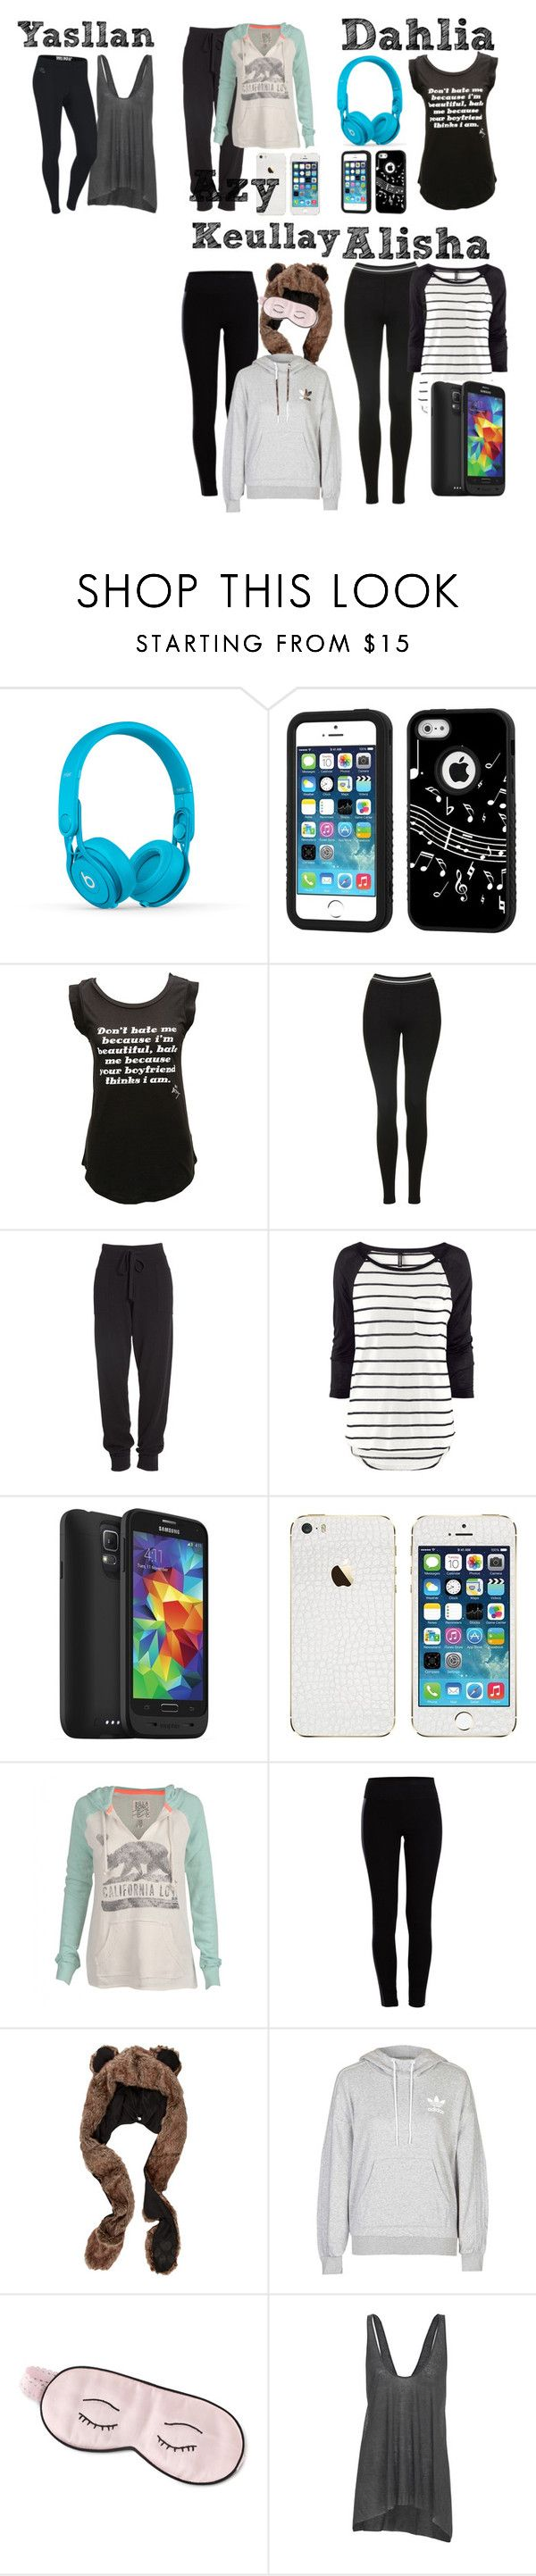 """""""Garotas { Family Bilker }"""" by moreninhapequena ❤ liked on Polyvore featuring Beats by Dr. Dre, Music Notes, Betsey Johnson, Topshop, Donna Karan, H&M, Mophie, Billabong, Pieces and adidas"""